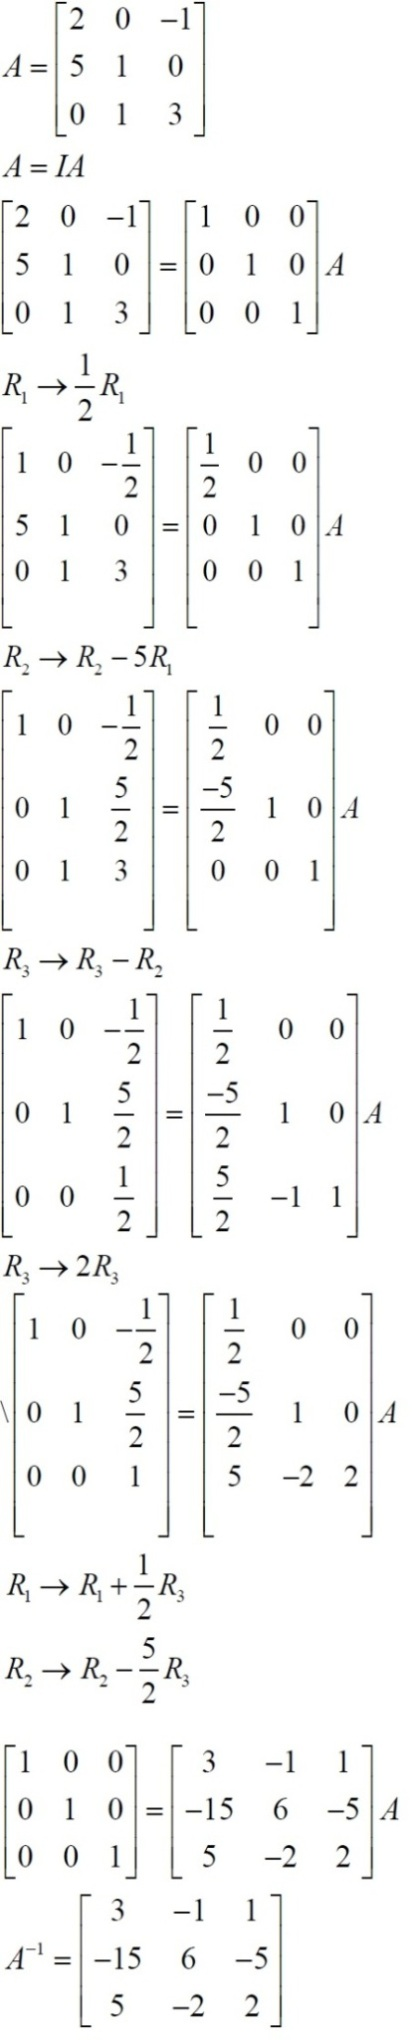 NCERT Solutions for Class 12 Maths: Chapter 3: Matrices (Exercise 3.4, Solution 17)